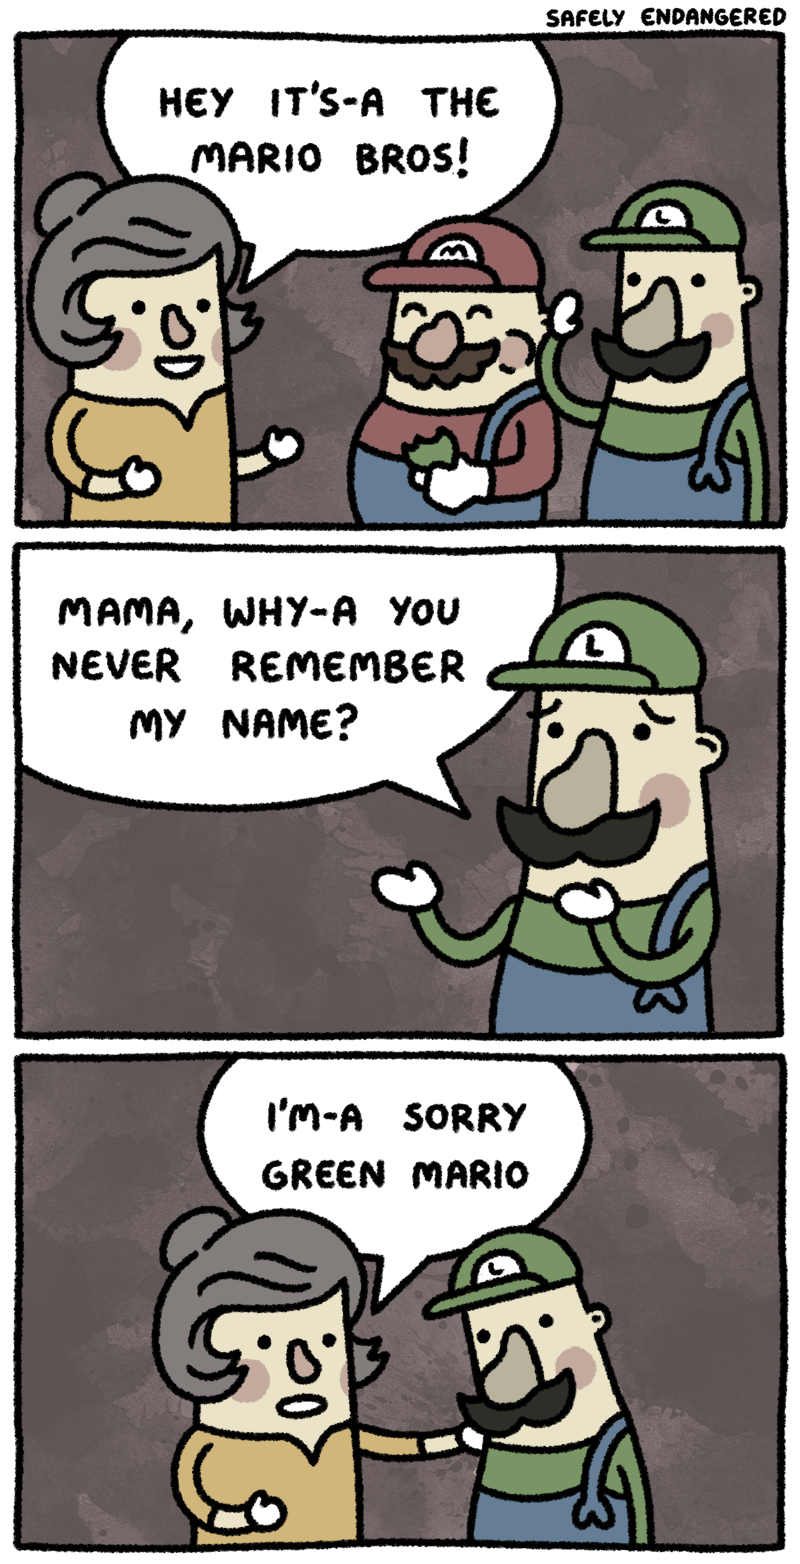 Sad Super Mario bros web comics - 8599800320